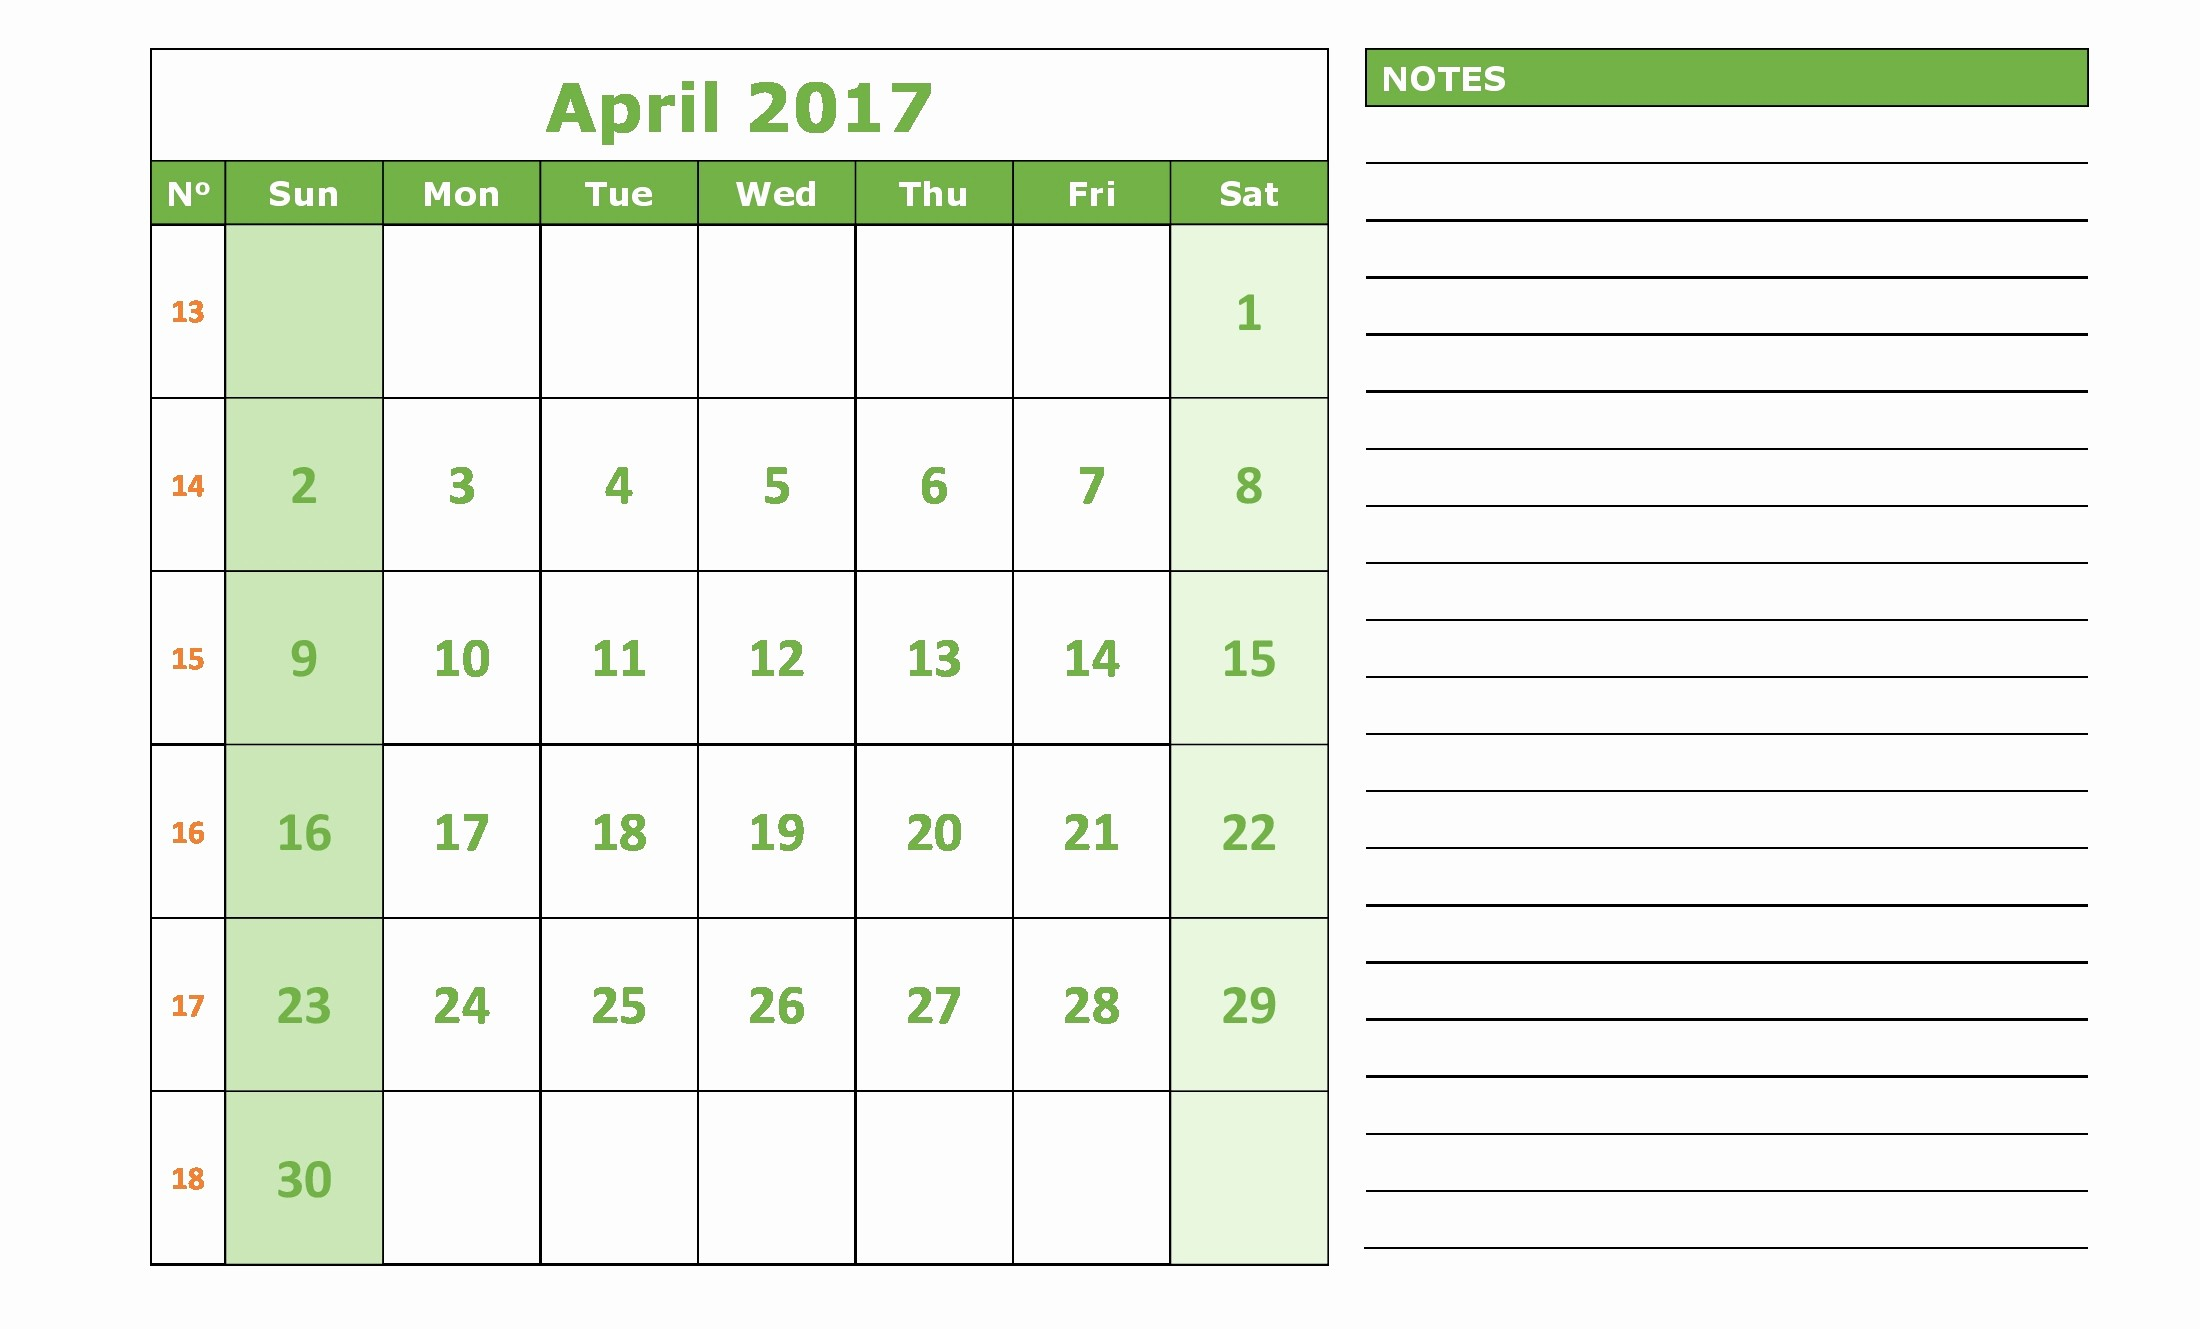 Calendar 2017 Monday to Sunday Beautiful April 2017 Calendar Monday to Sunday Calendar and